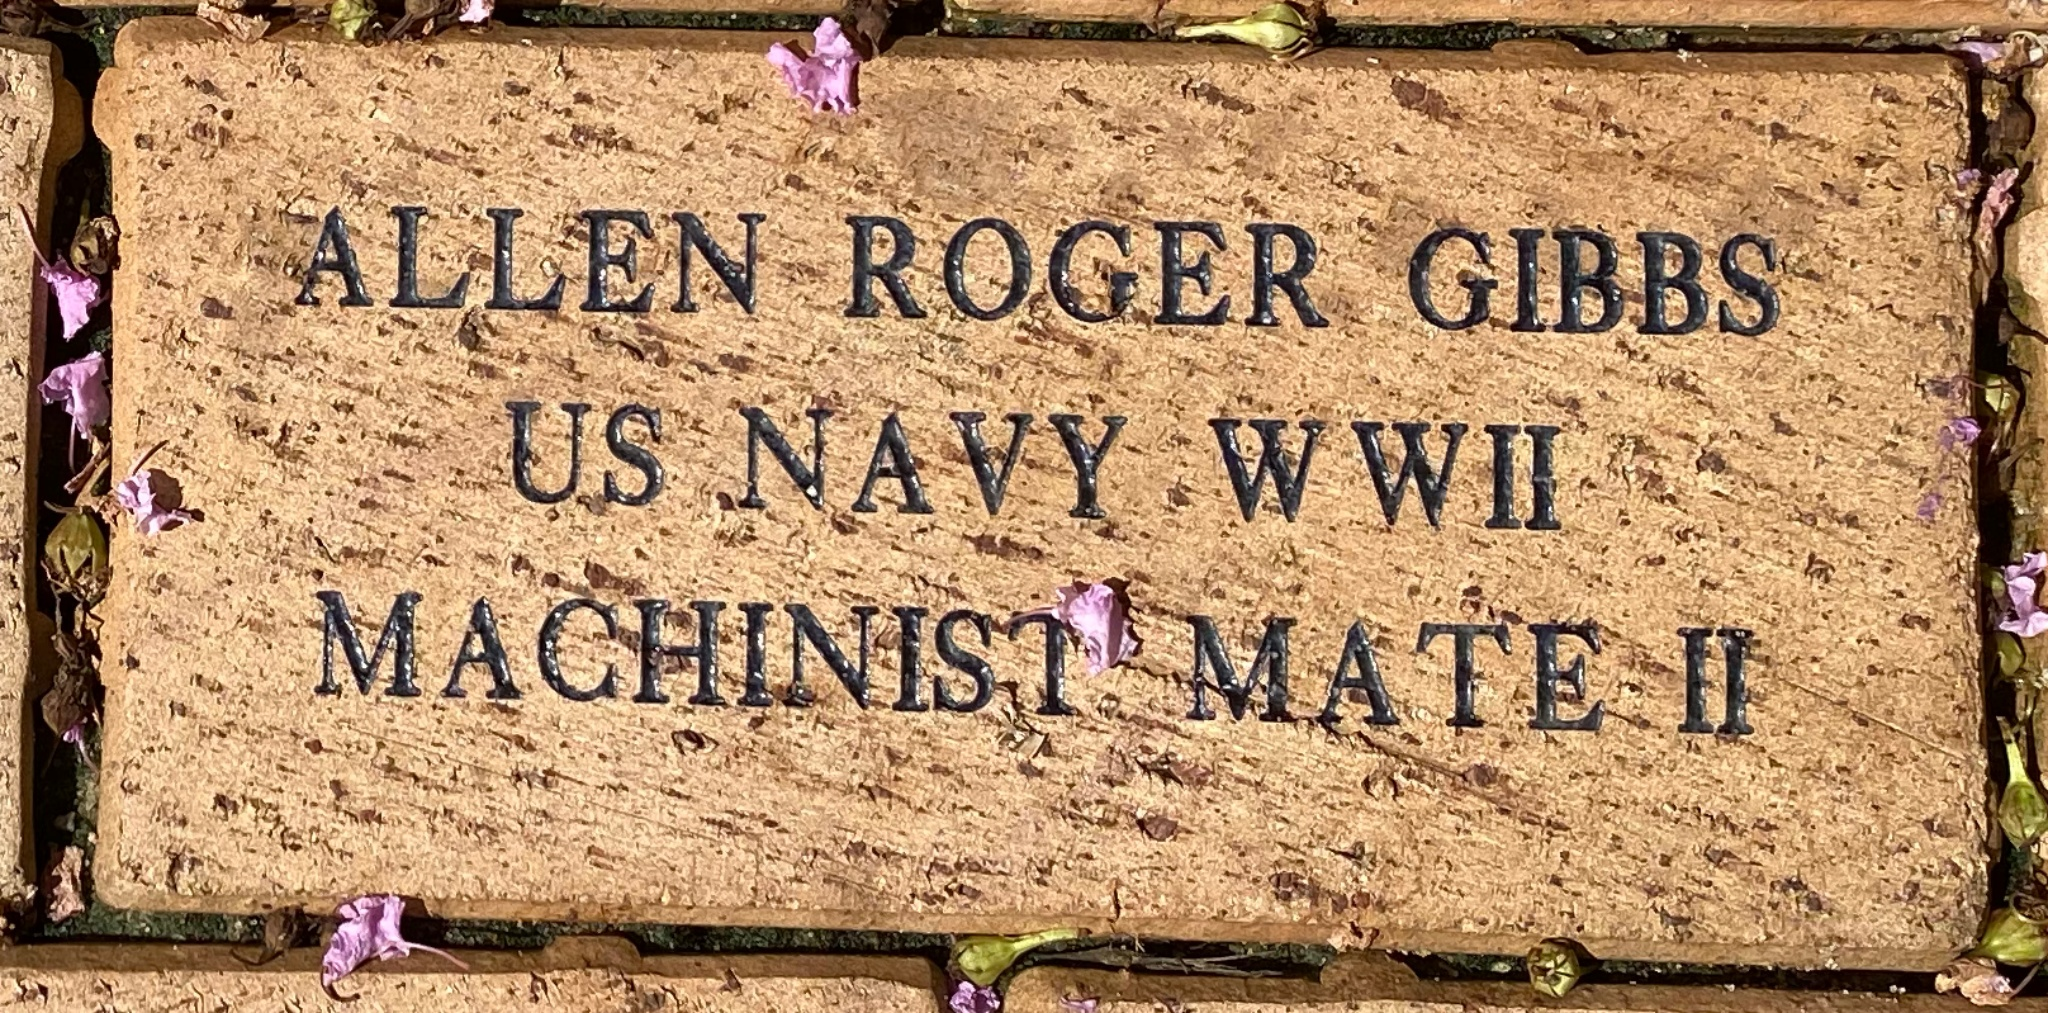 ALLEN ROGER GIBBS US NAVY WWII MACHINIST MATE II